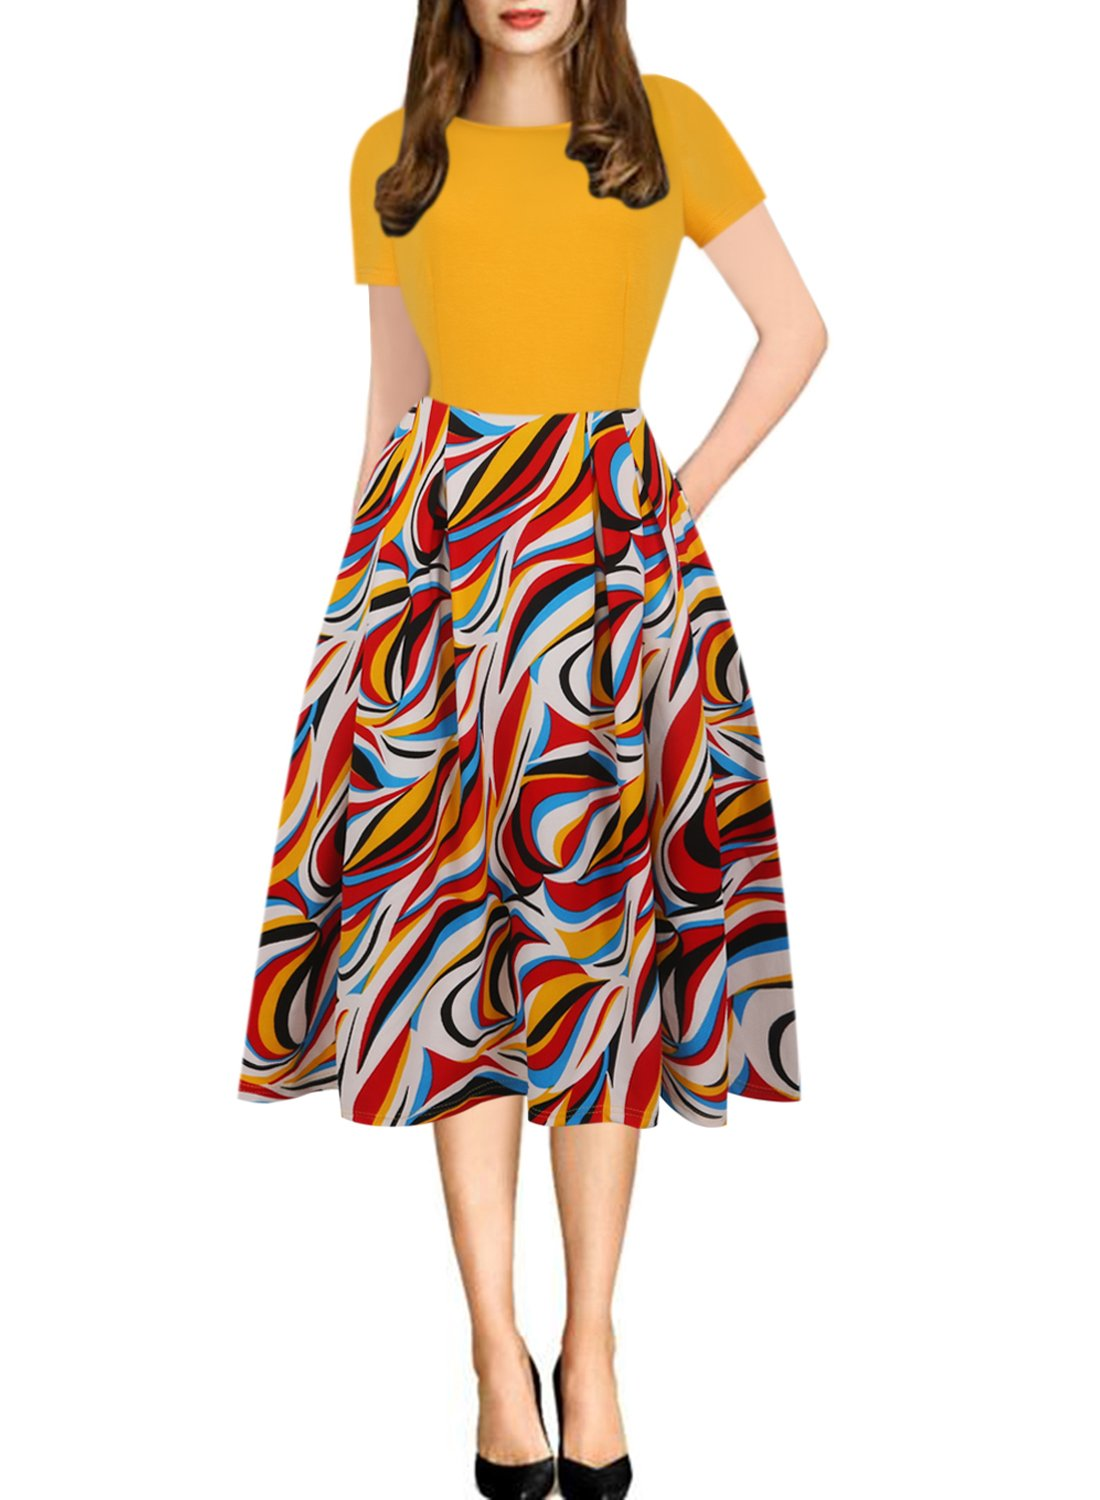 oxiuly Women's Vintage Patchwork Pockets Puffy Swing Casual Party Dress OX165 (3XL, Yellow)